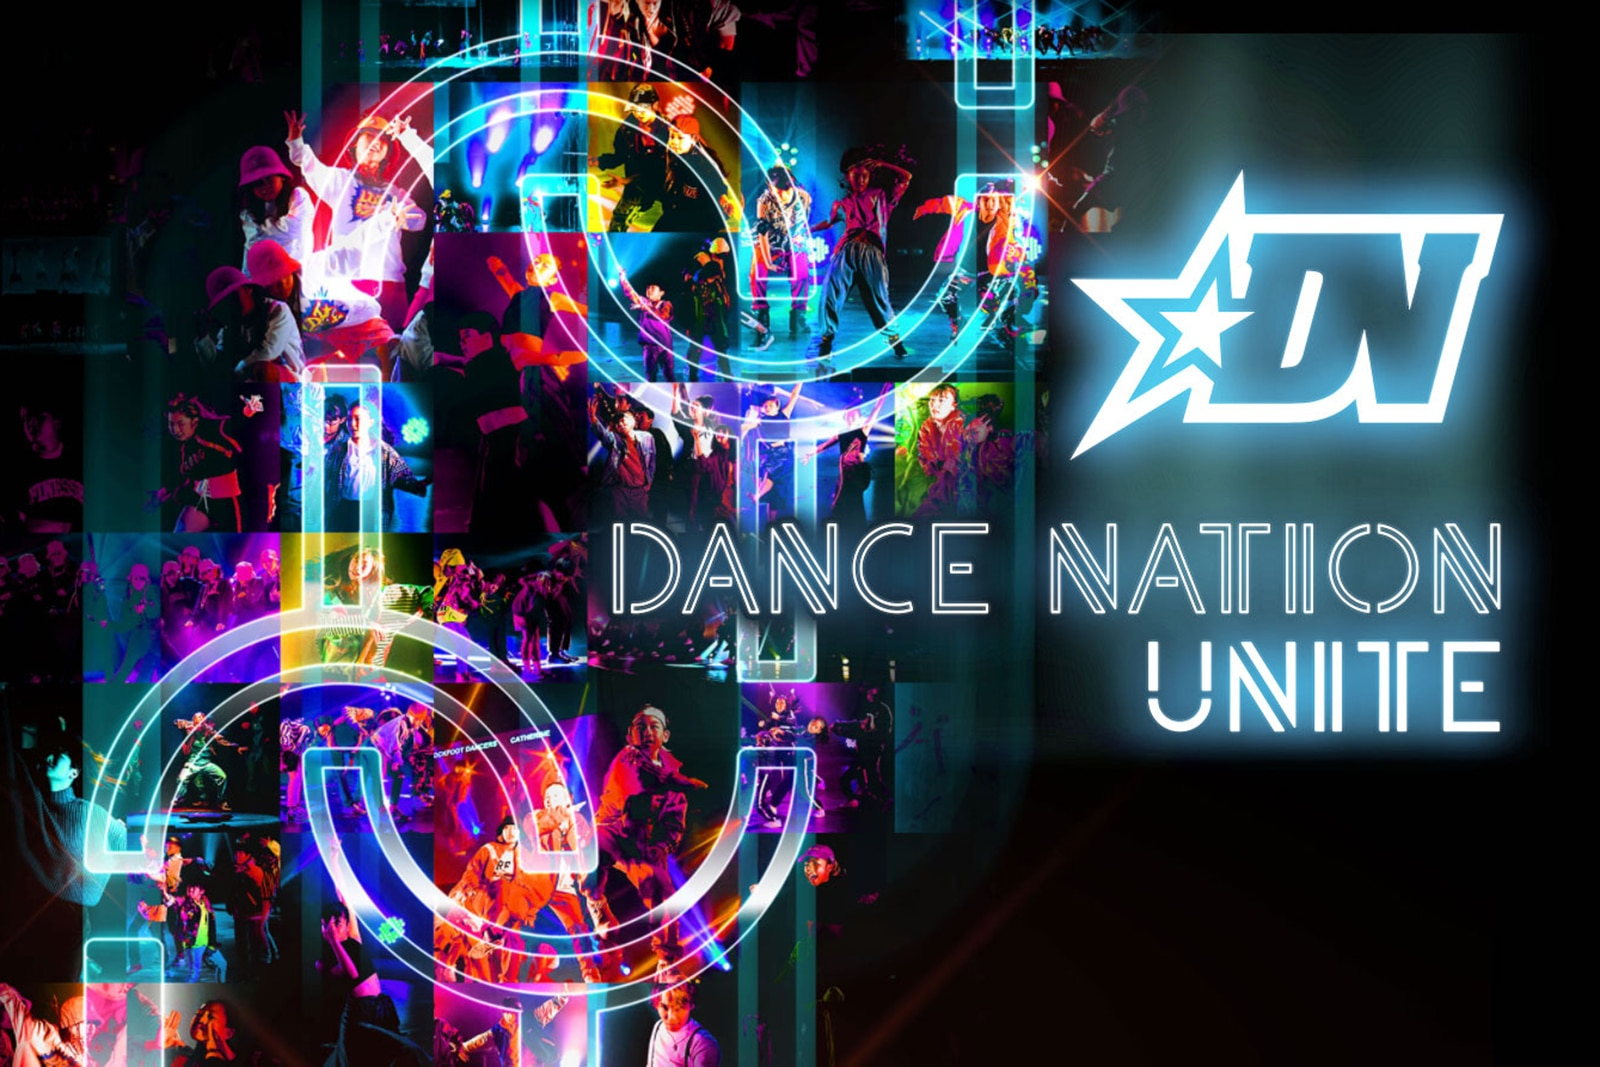 DANCE NATION UNITE